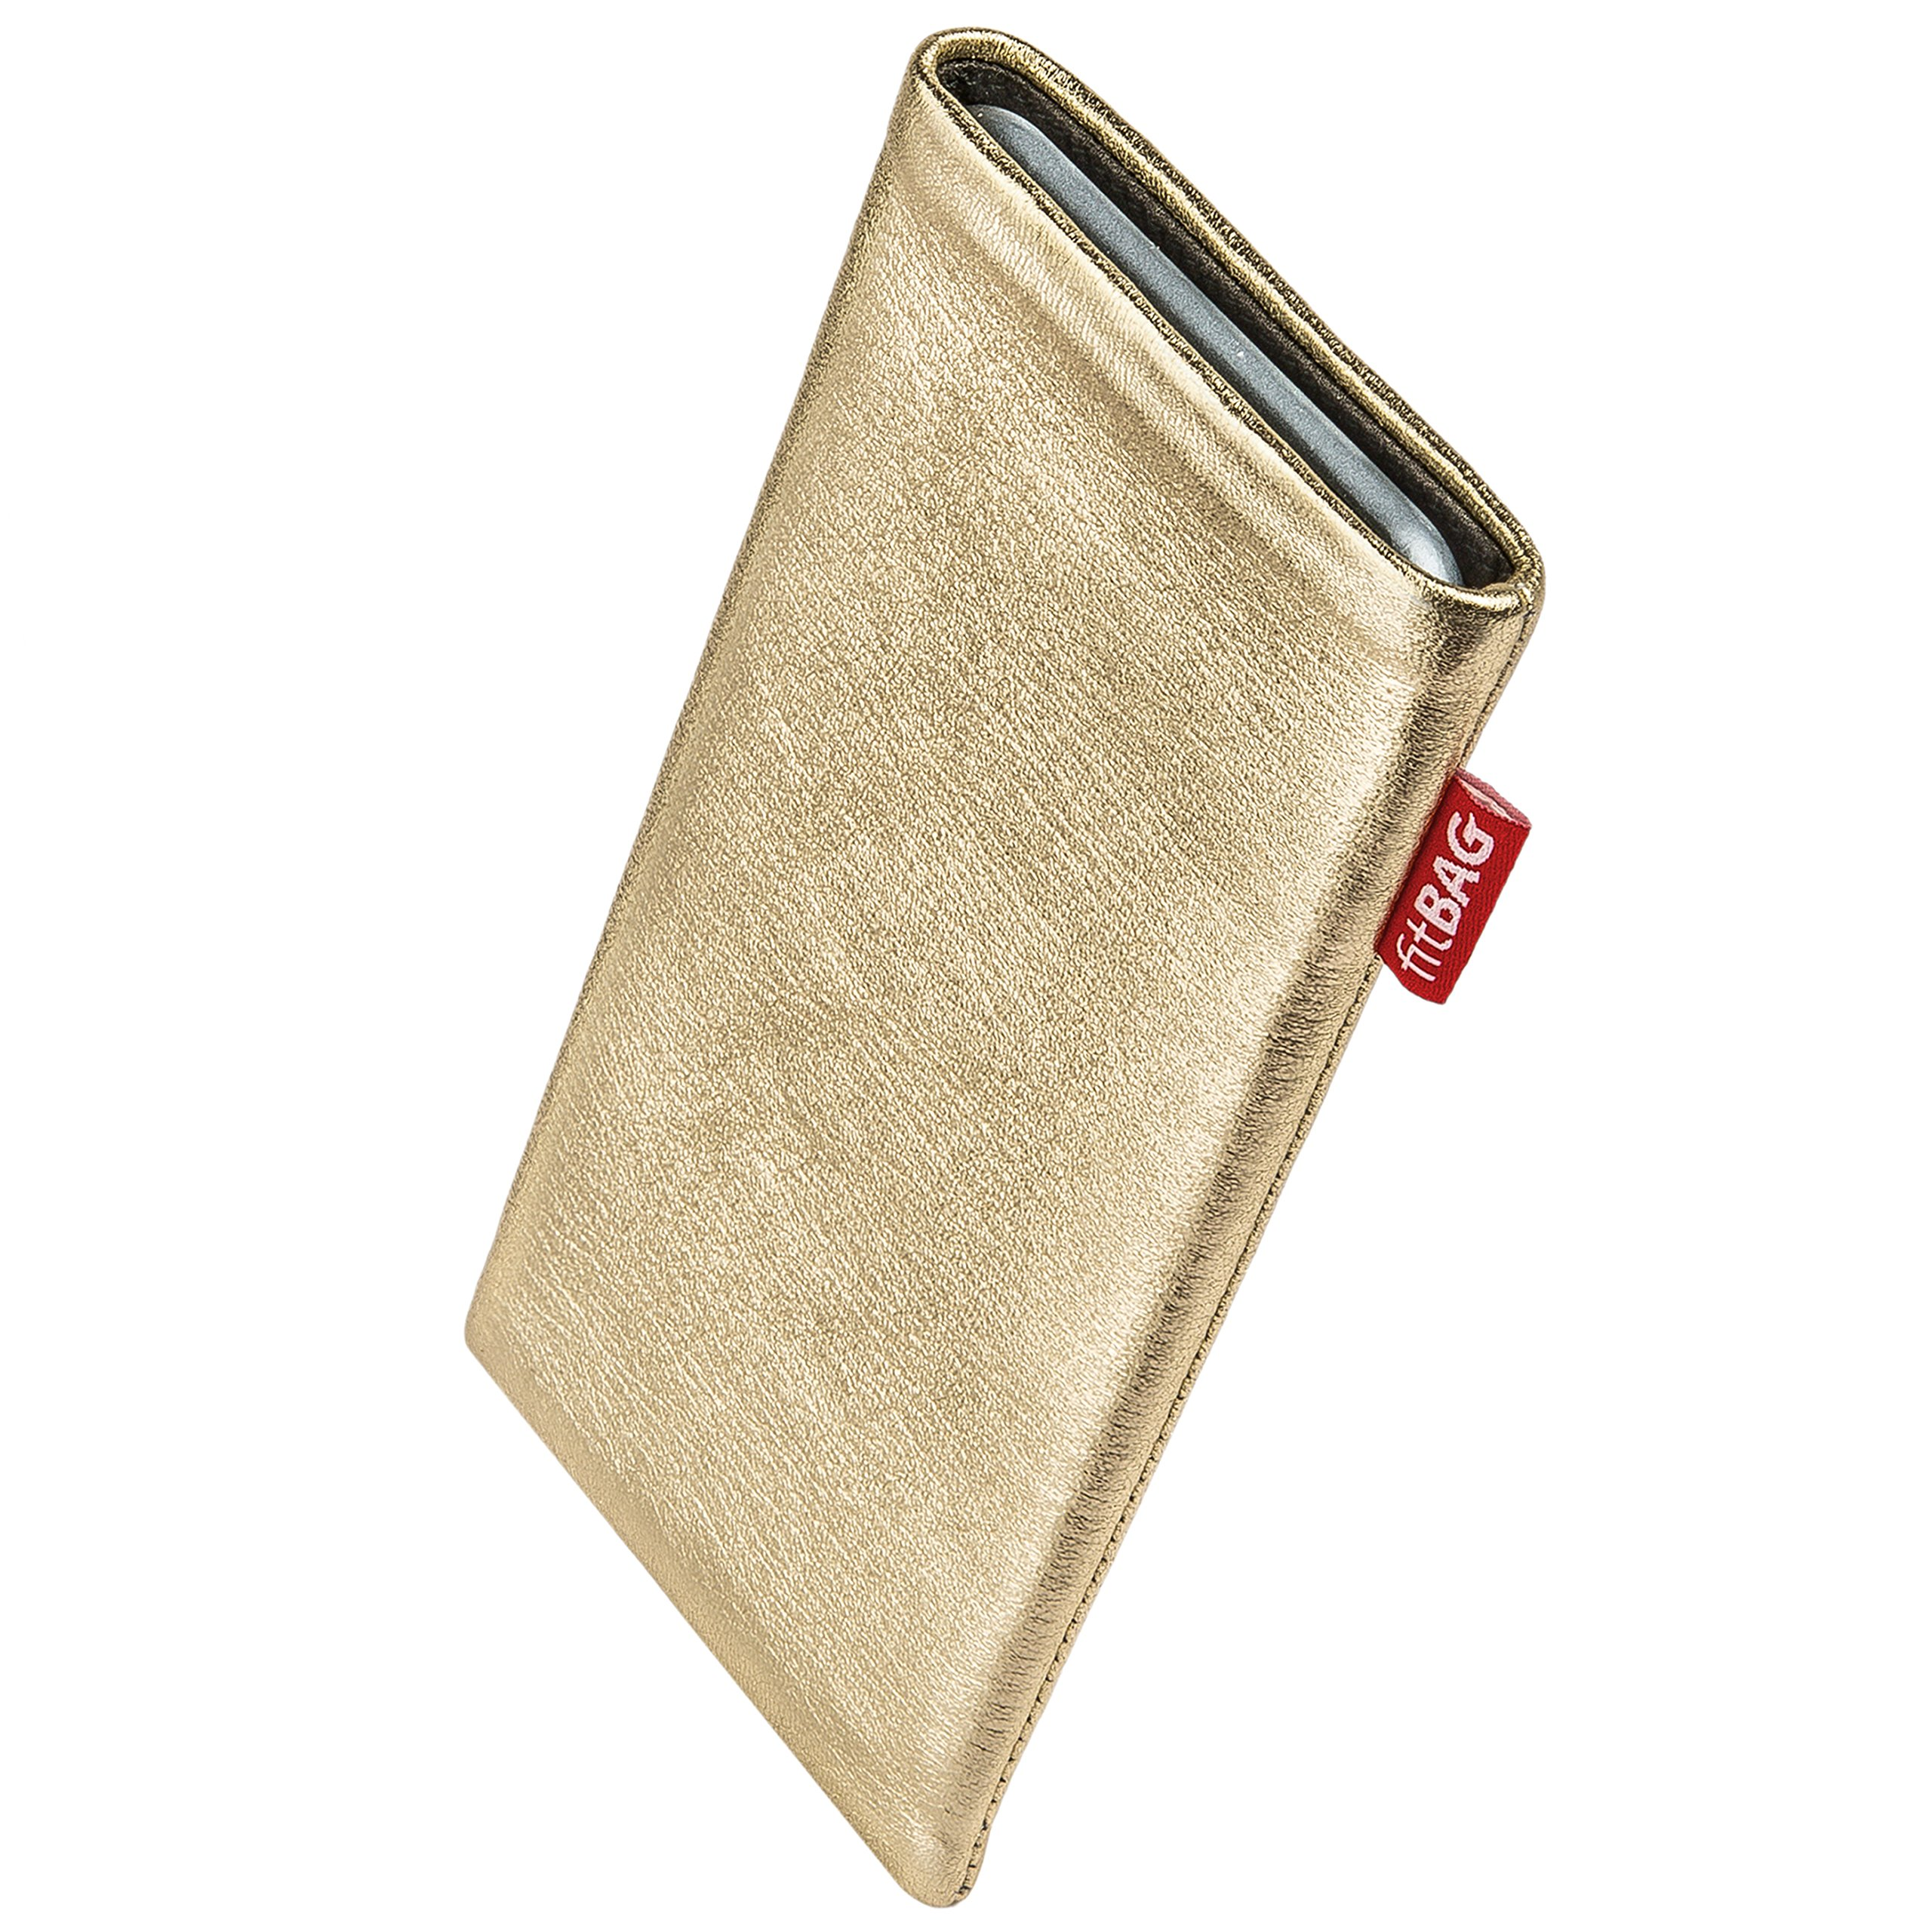 fitBAG Groove Gold custom tailored sleeve for Thomson Connect TH701. Fine nappa foil leather pouch with integrated microfibre lining for display cleaning